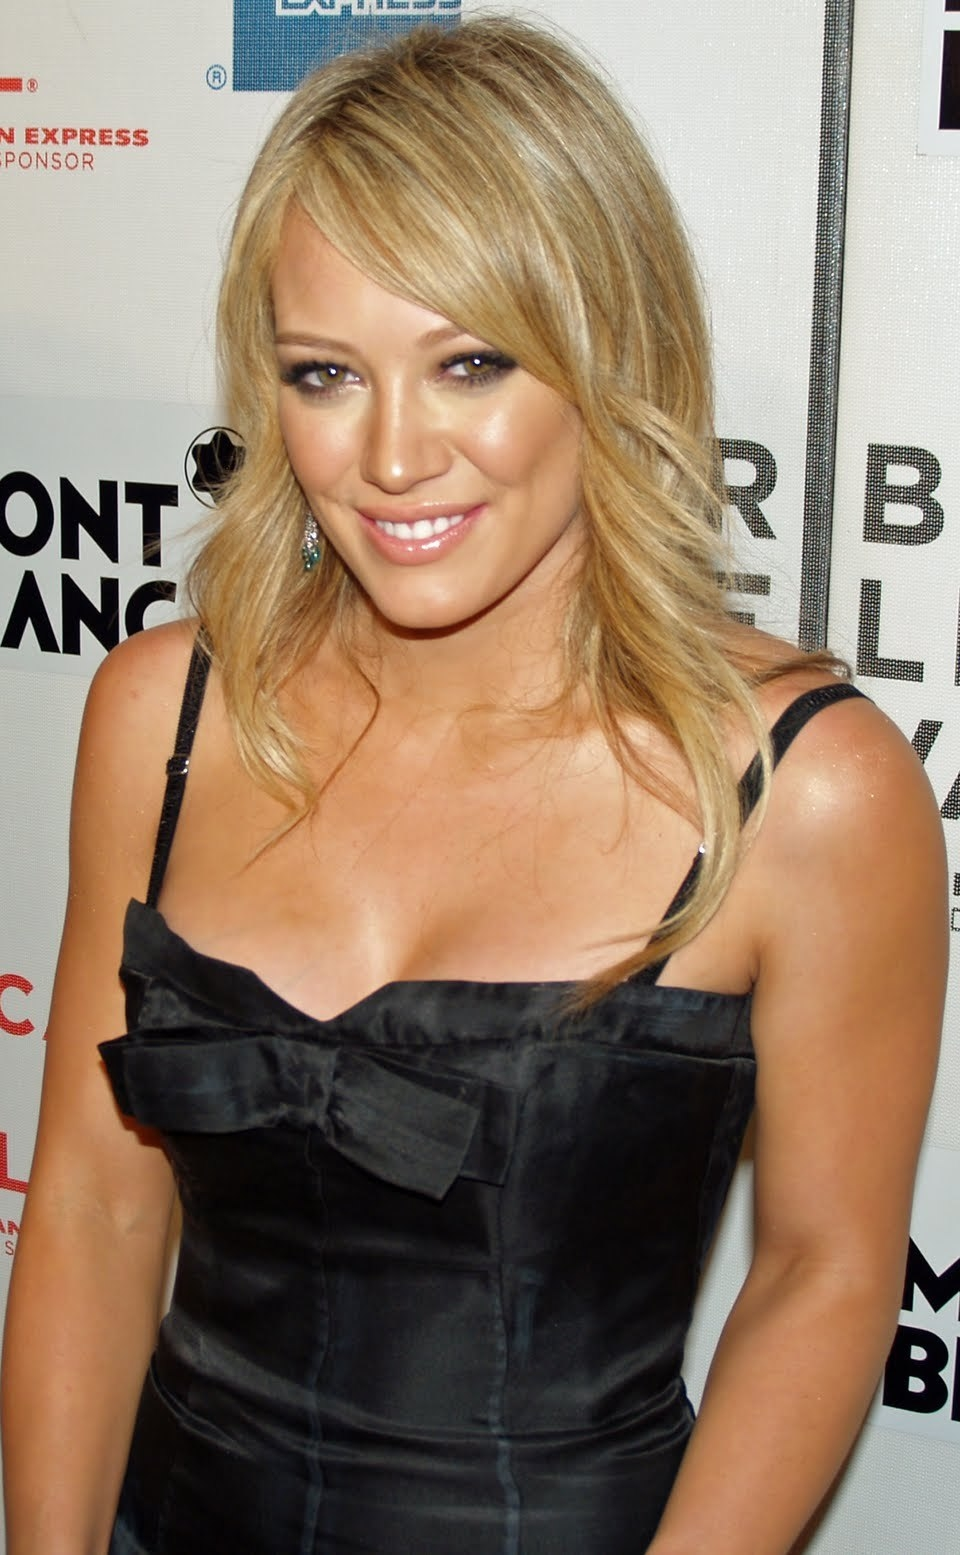 Hilary Duff Net Worth